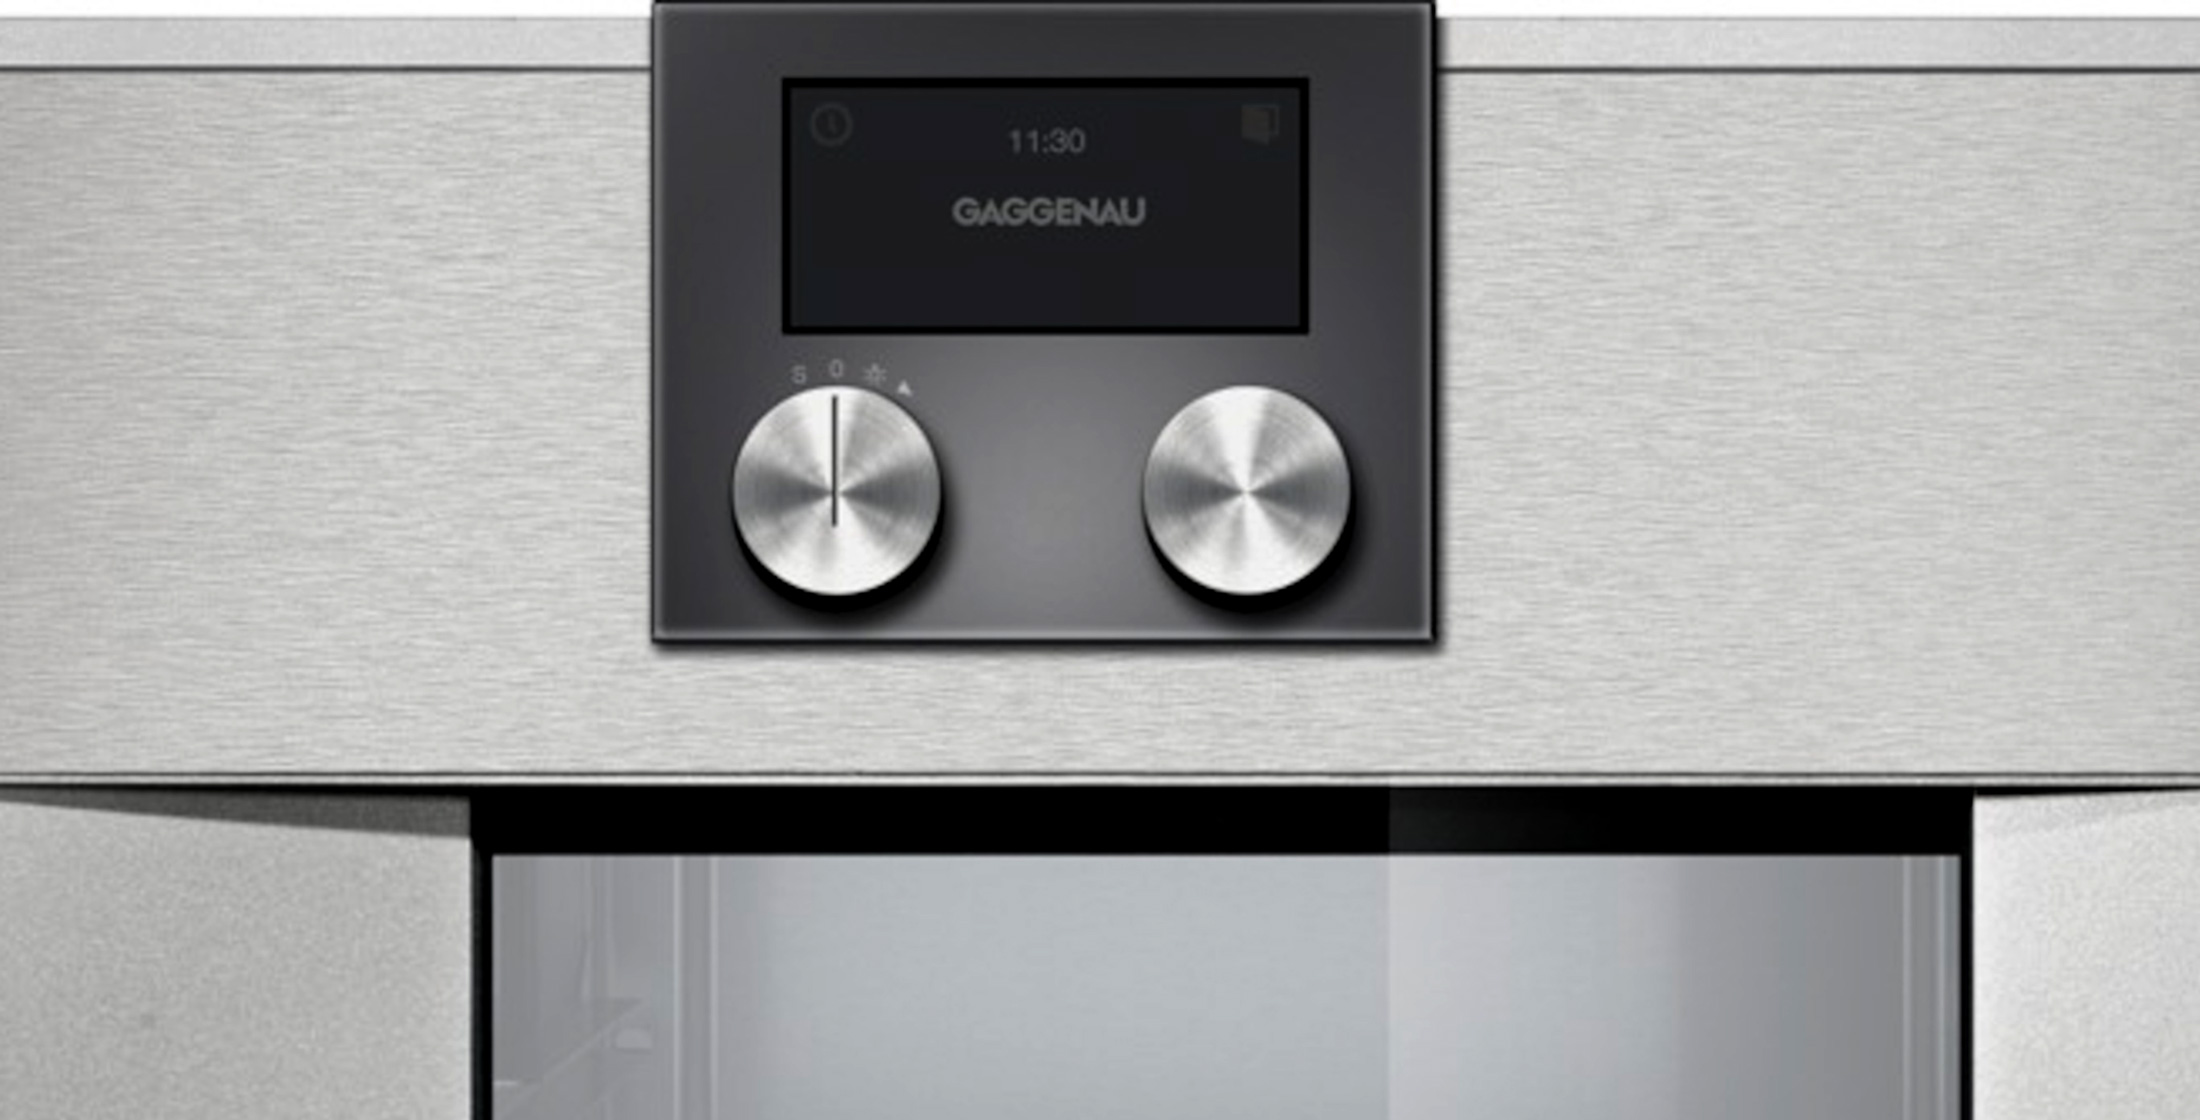 Gaggenau Celebrates 333 Years With New Cooking Tech